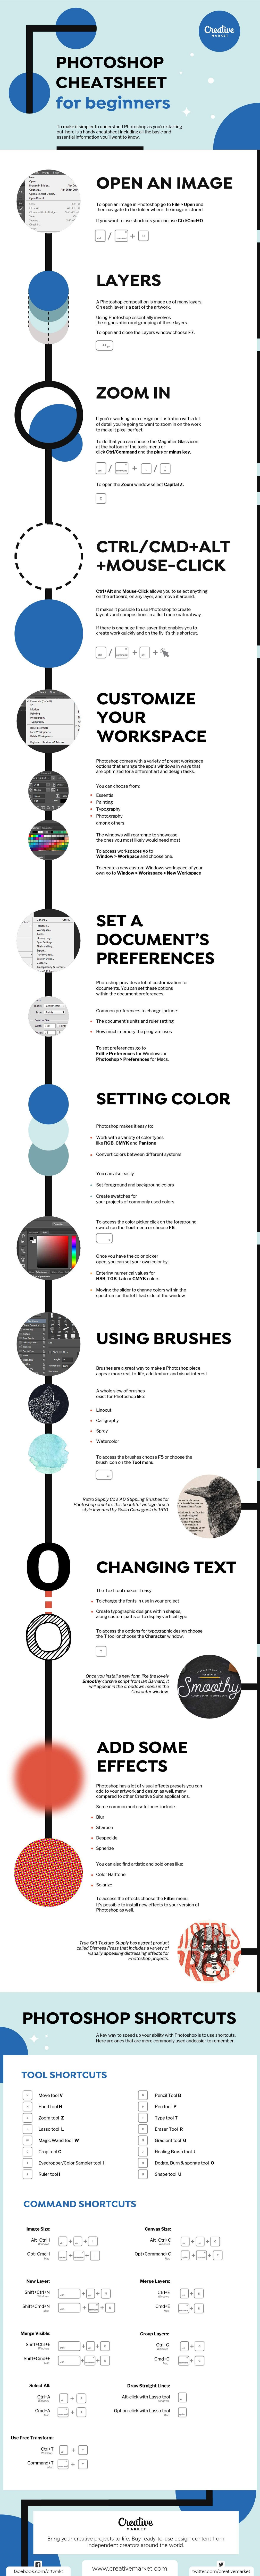 Beginner's Guide to Photoshop: One-Stop Cheatsheet #infographic